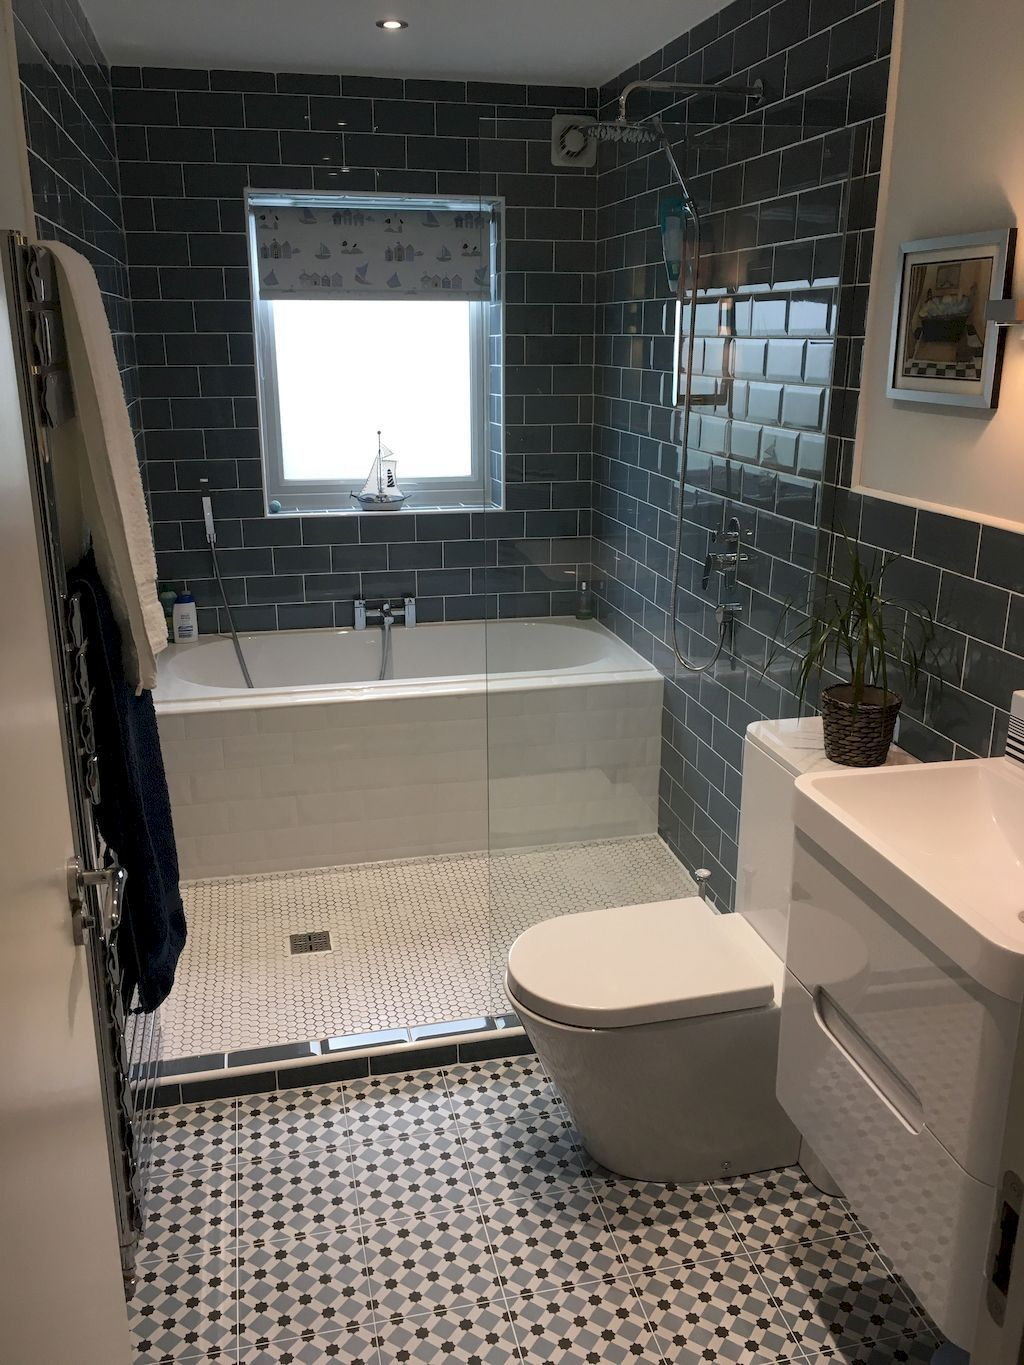 Small Bathroom Remodel On A Budget For First Apartment Ideas - Bathroom remodel what to do first